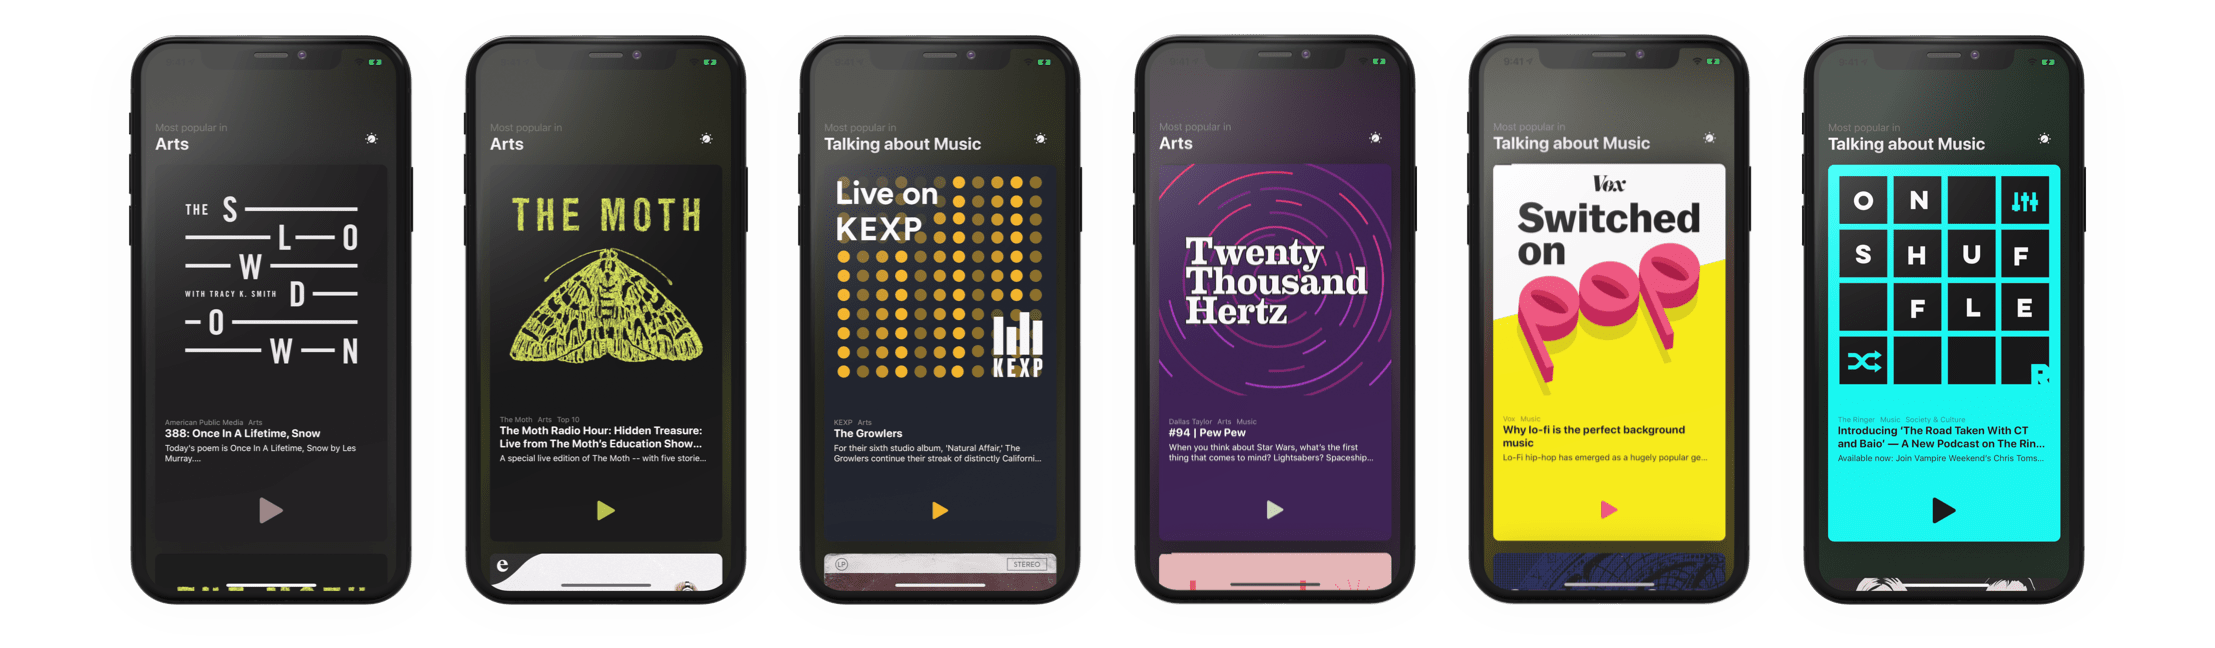 A row of iPhones showing a podcast app with varying podcasts selected